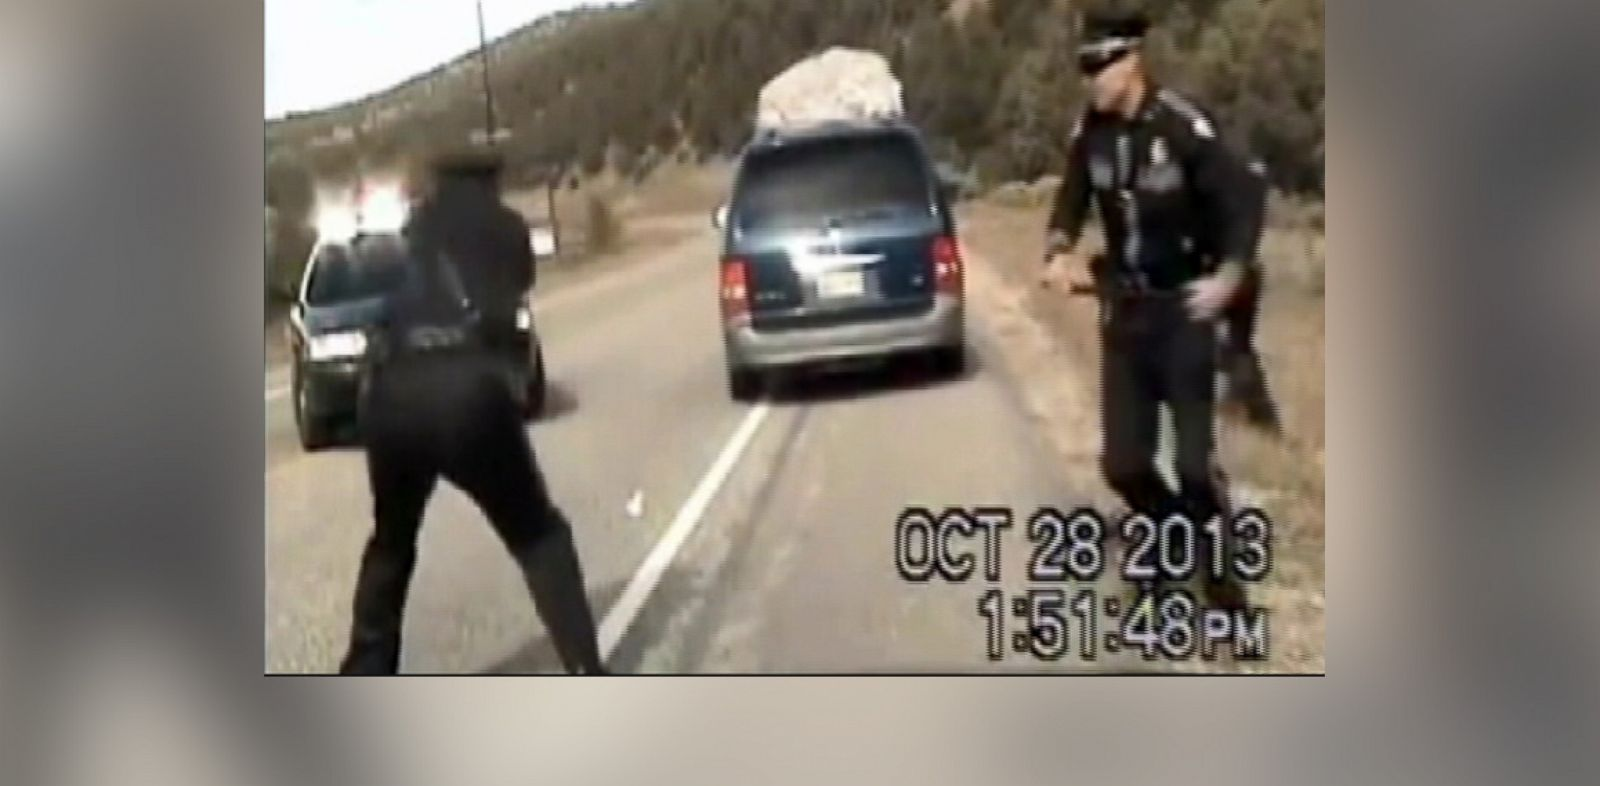 PHOTO: A police cruiser dashboard camera shows Elias Montoya firing shots at a minivan, Oct. 28, 2013.